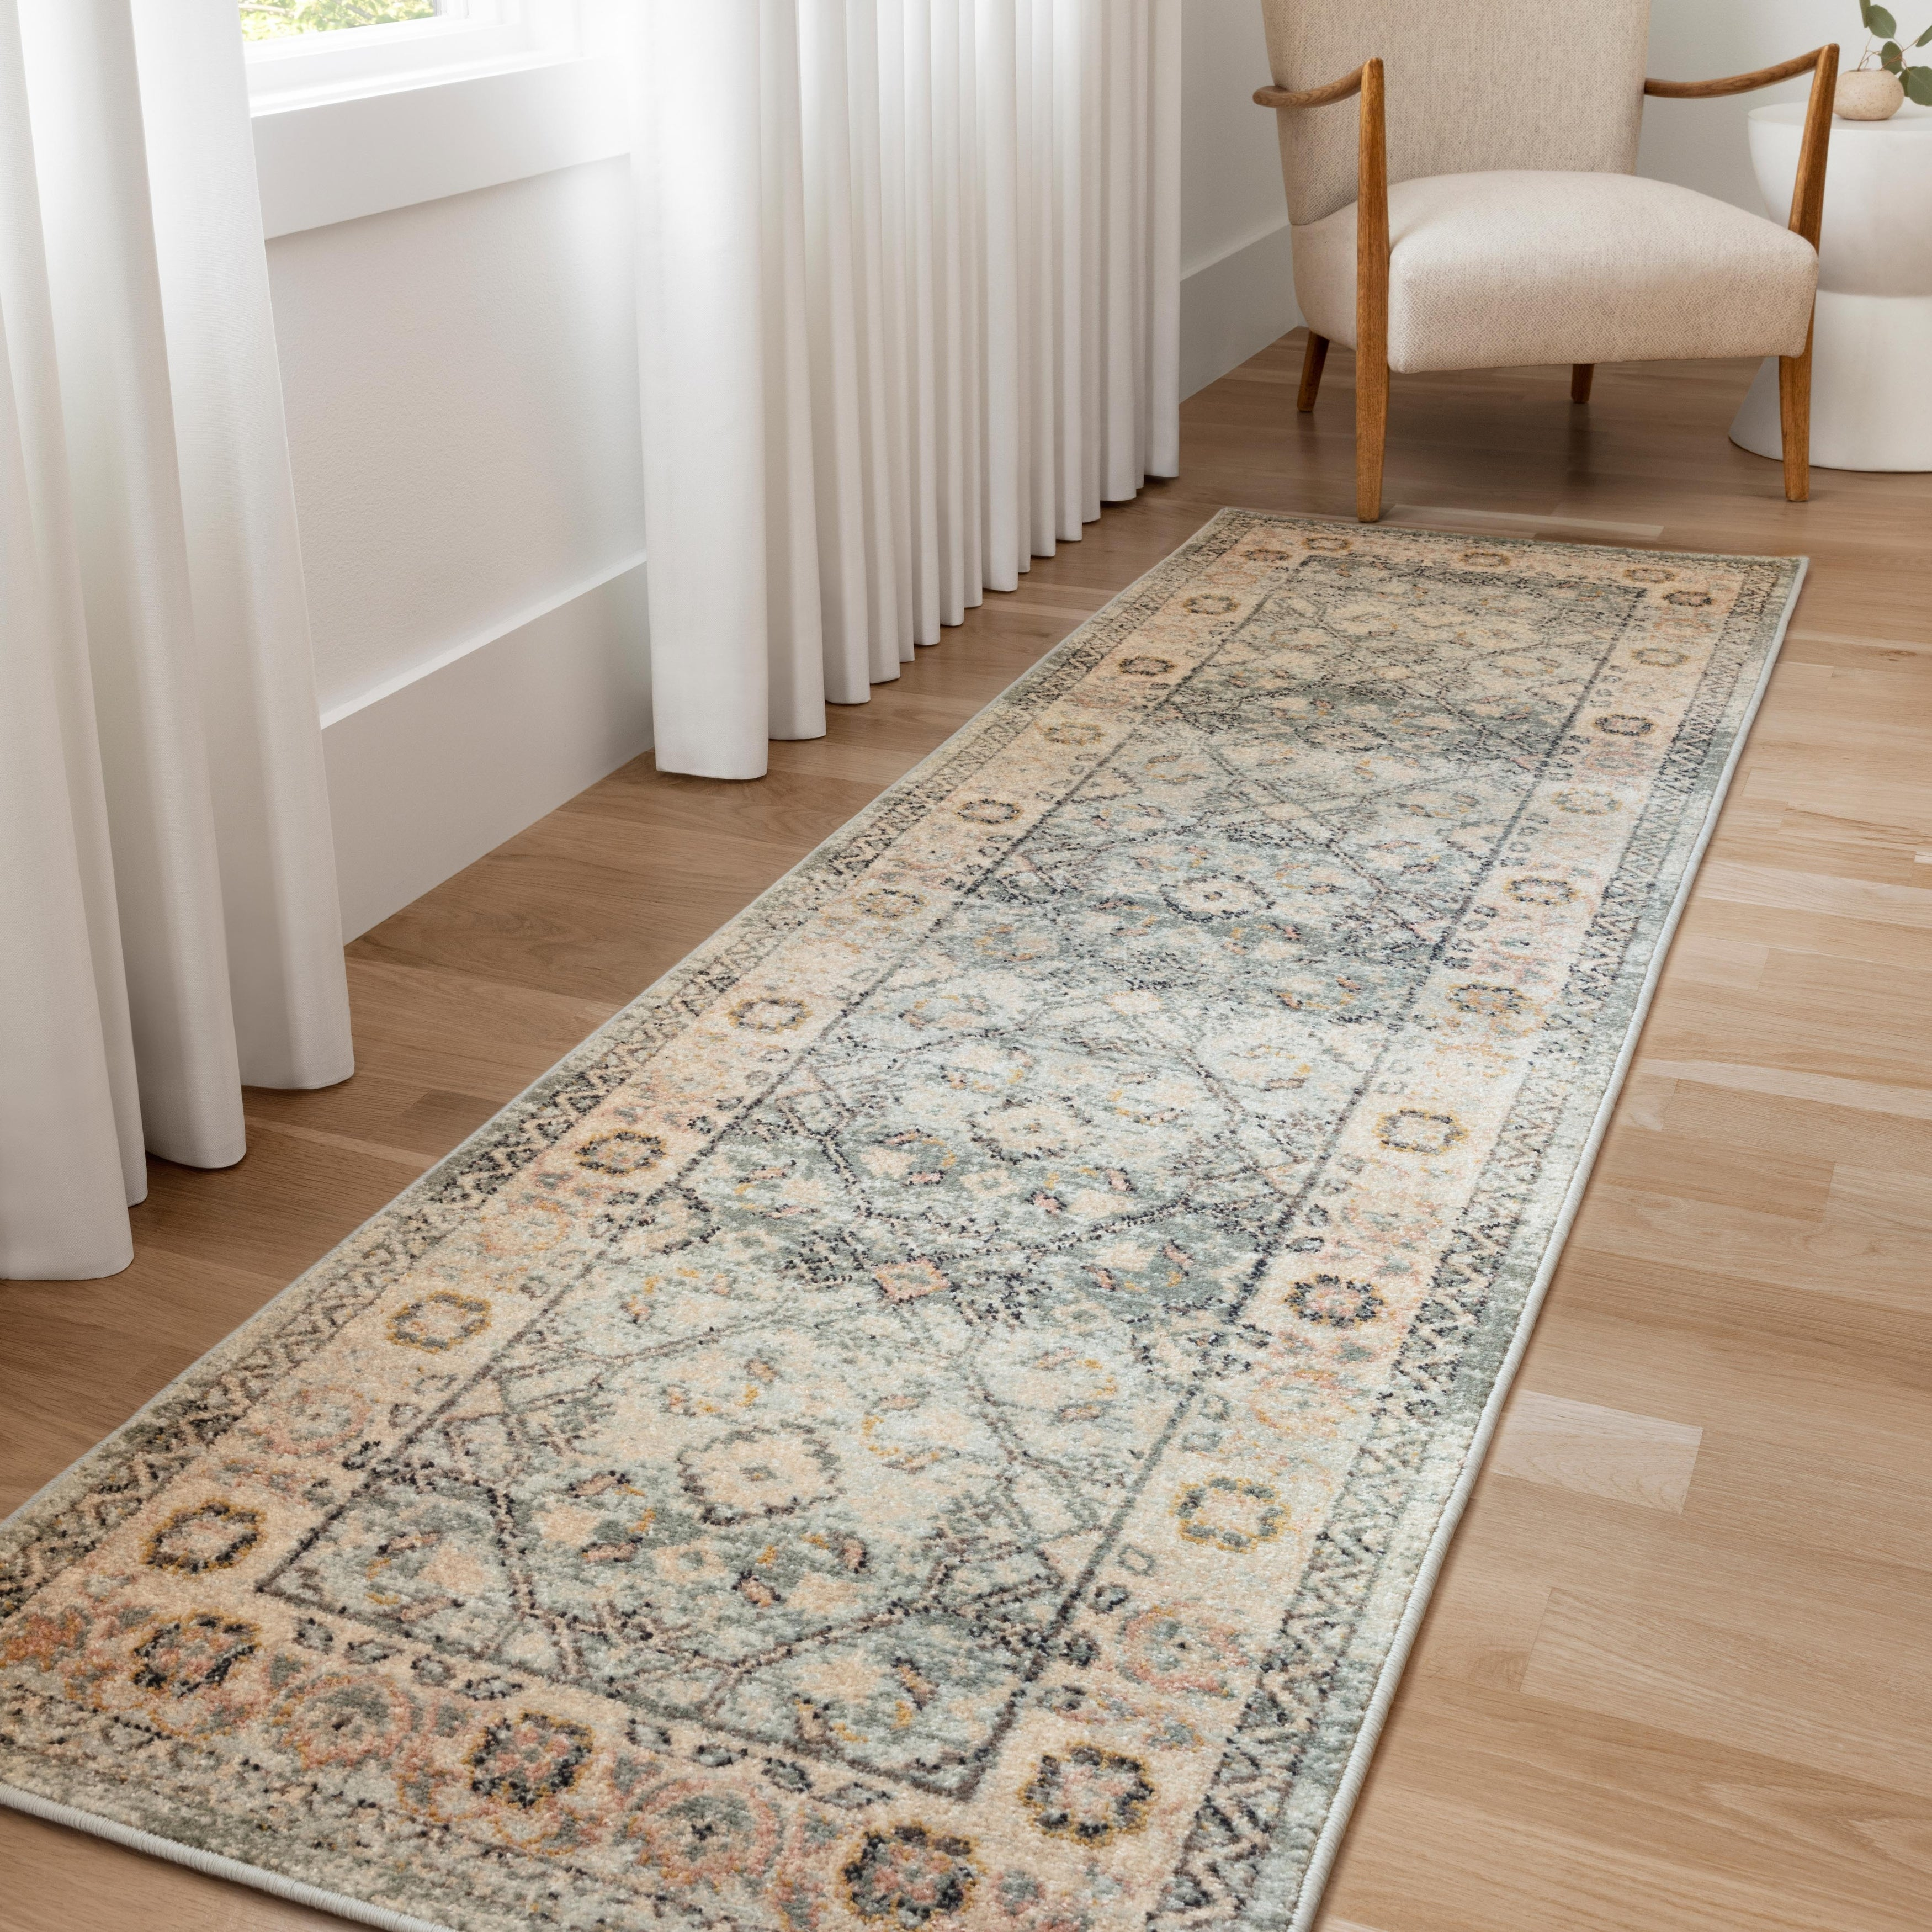 Alexander Home Luxe Shabby Chic Antiqued Distressed Area Rug Overstock 30732965